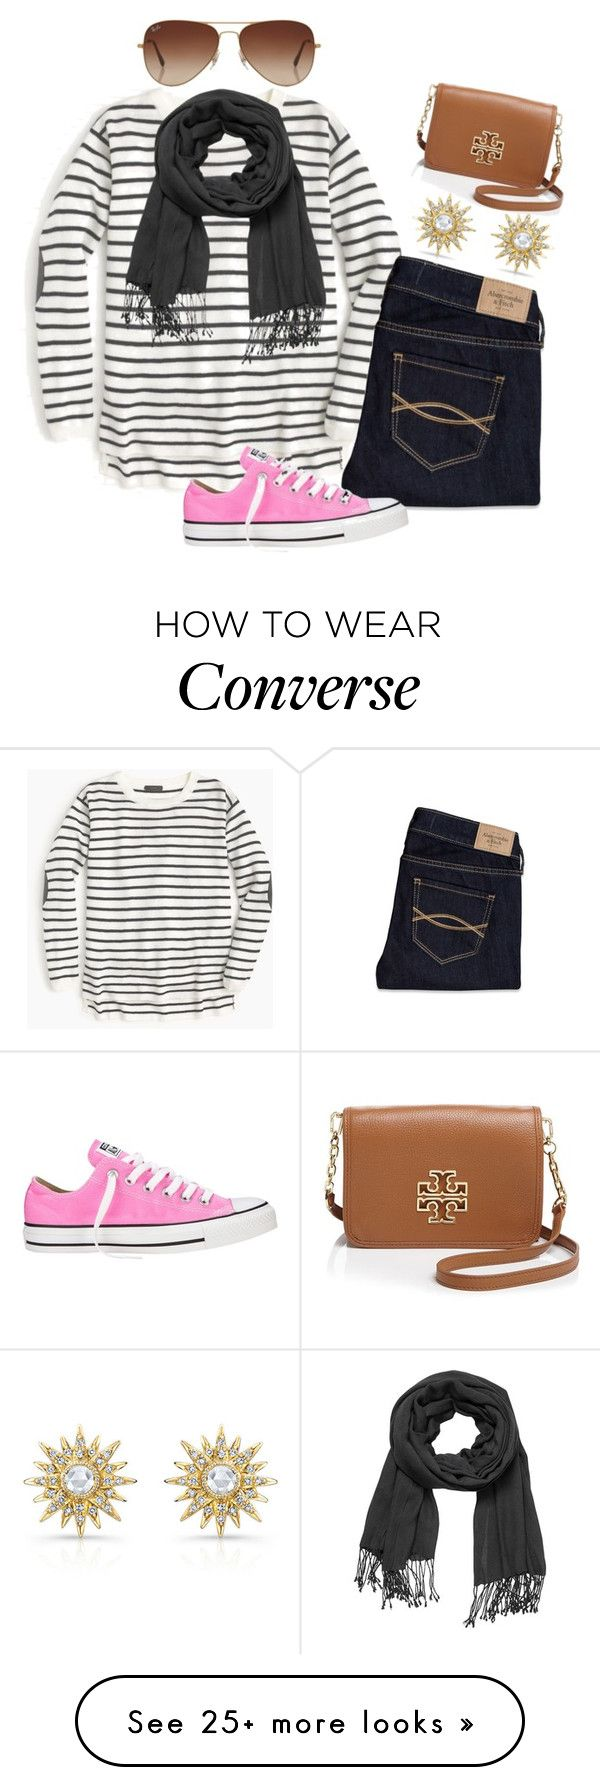 """Pink Converse"" by chellylovesyew on Polyvore featuring J.Crew, maurices, Abercrombie & Fitch, Converse, Tory Burch and Rayban"